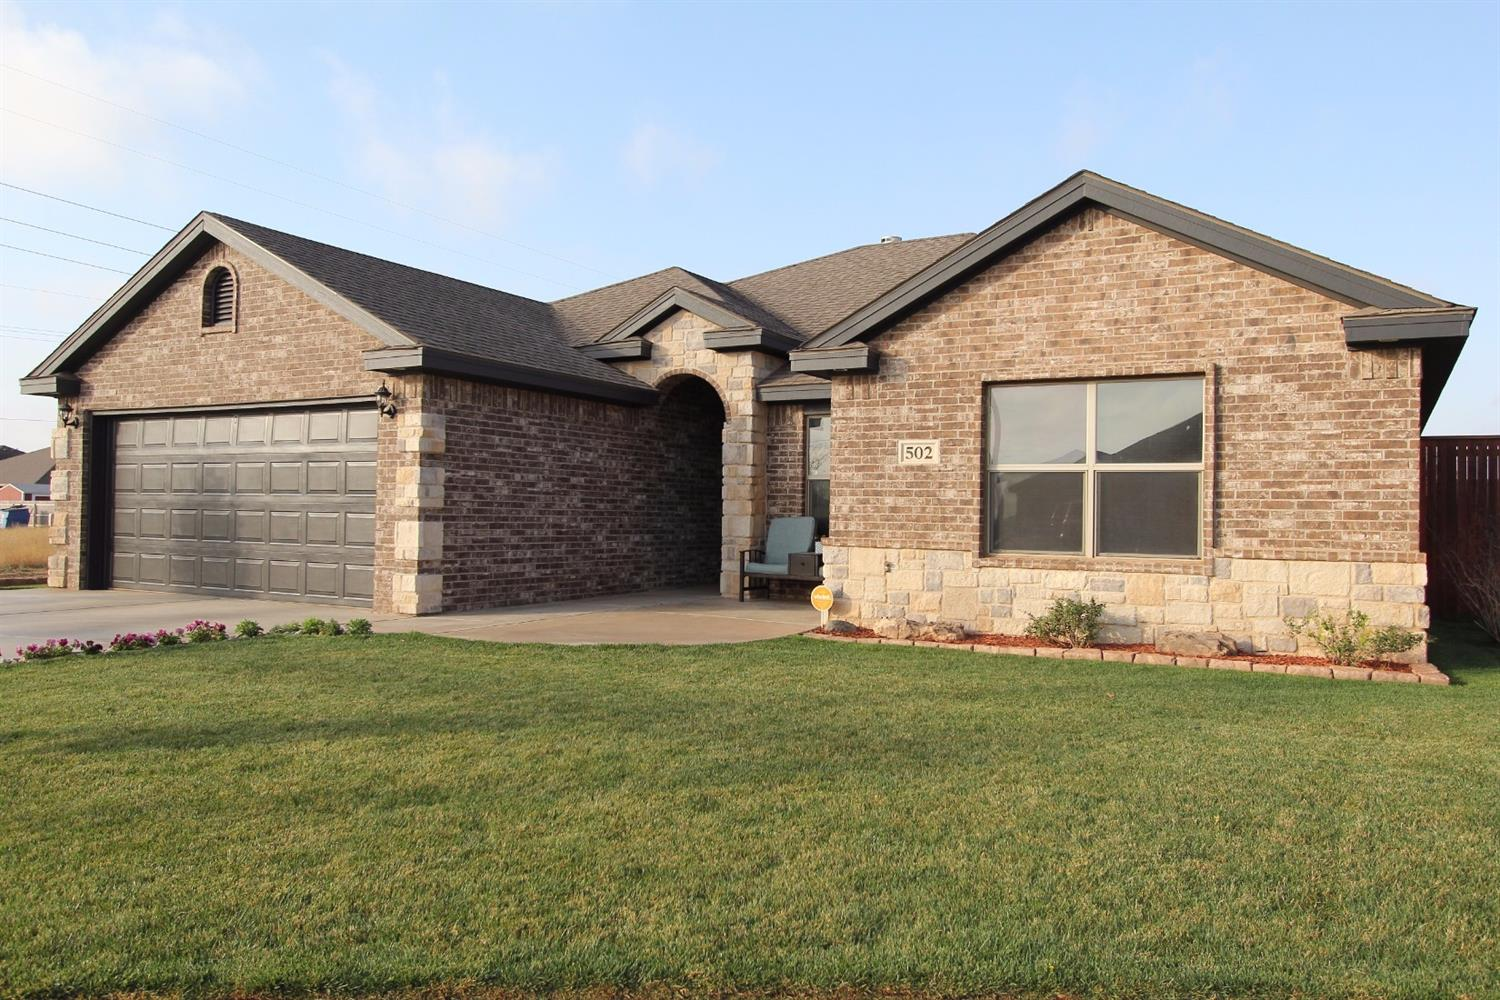 502 Arthur Ave, Wolfforth, TX 79382